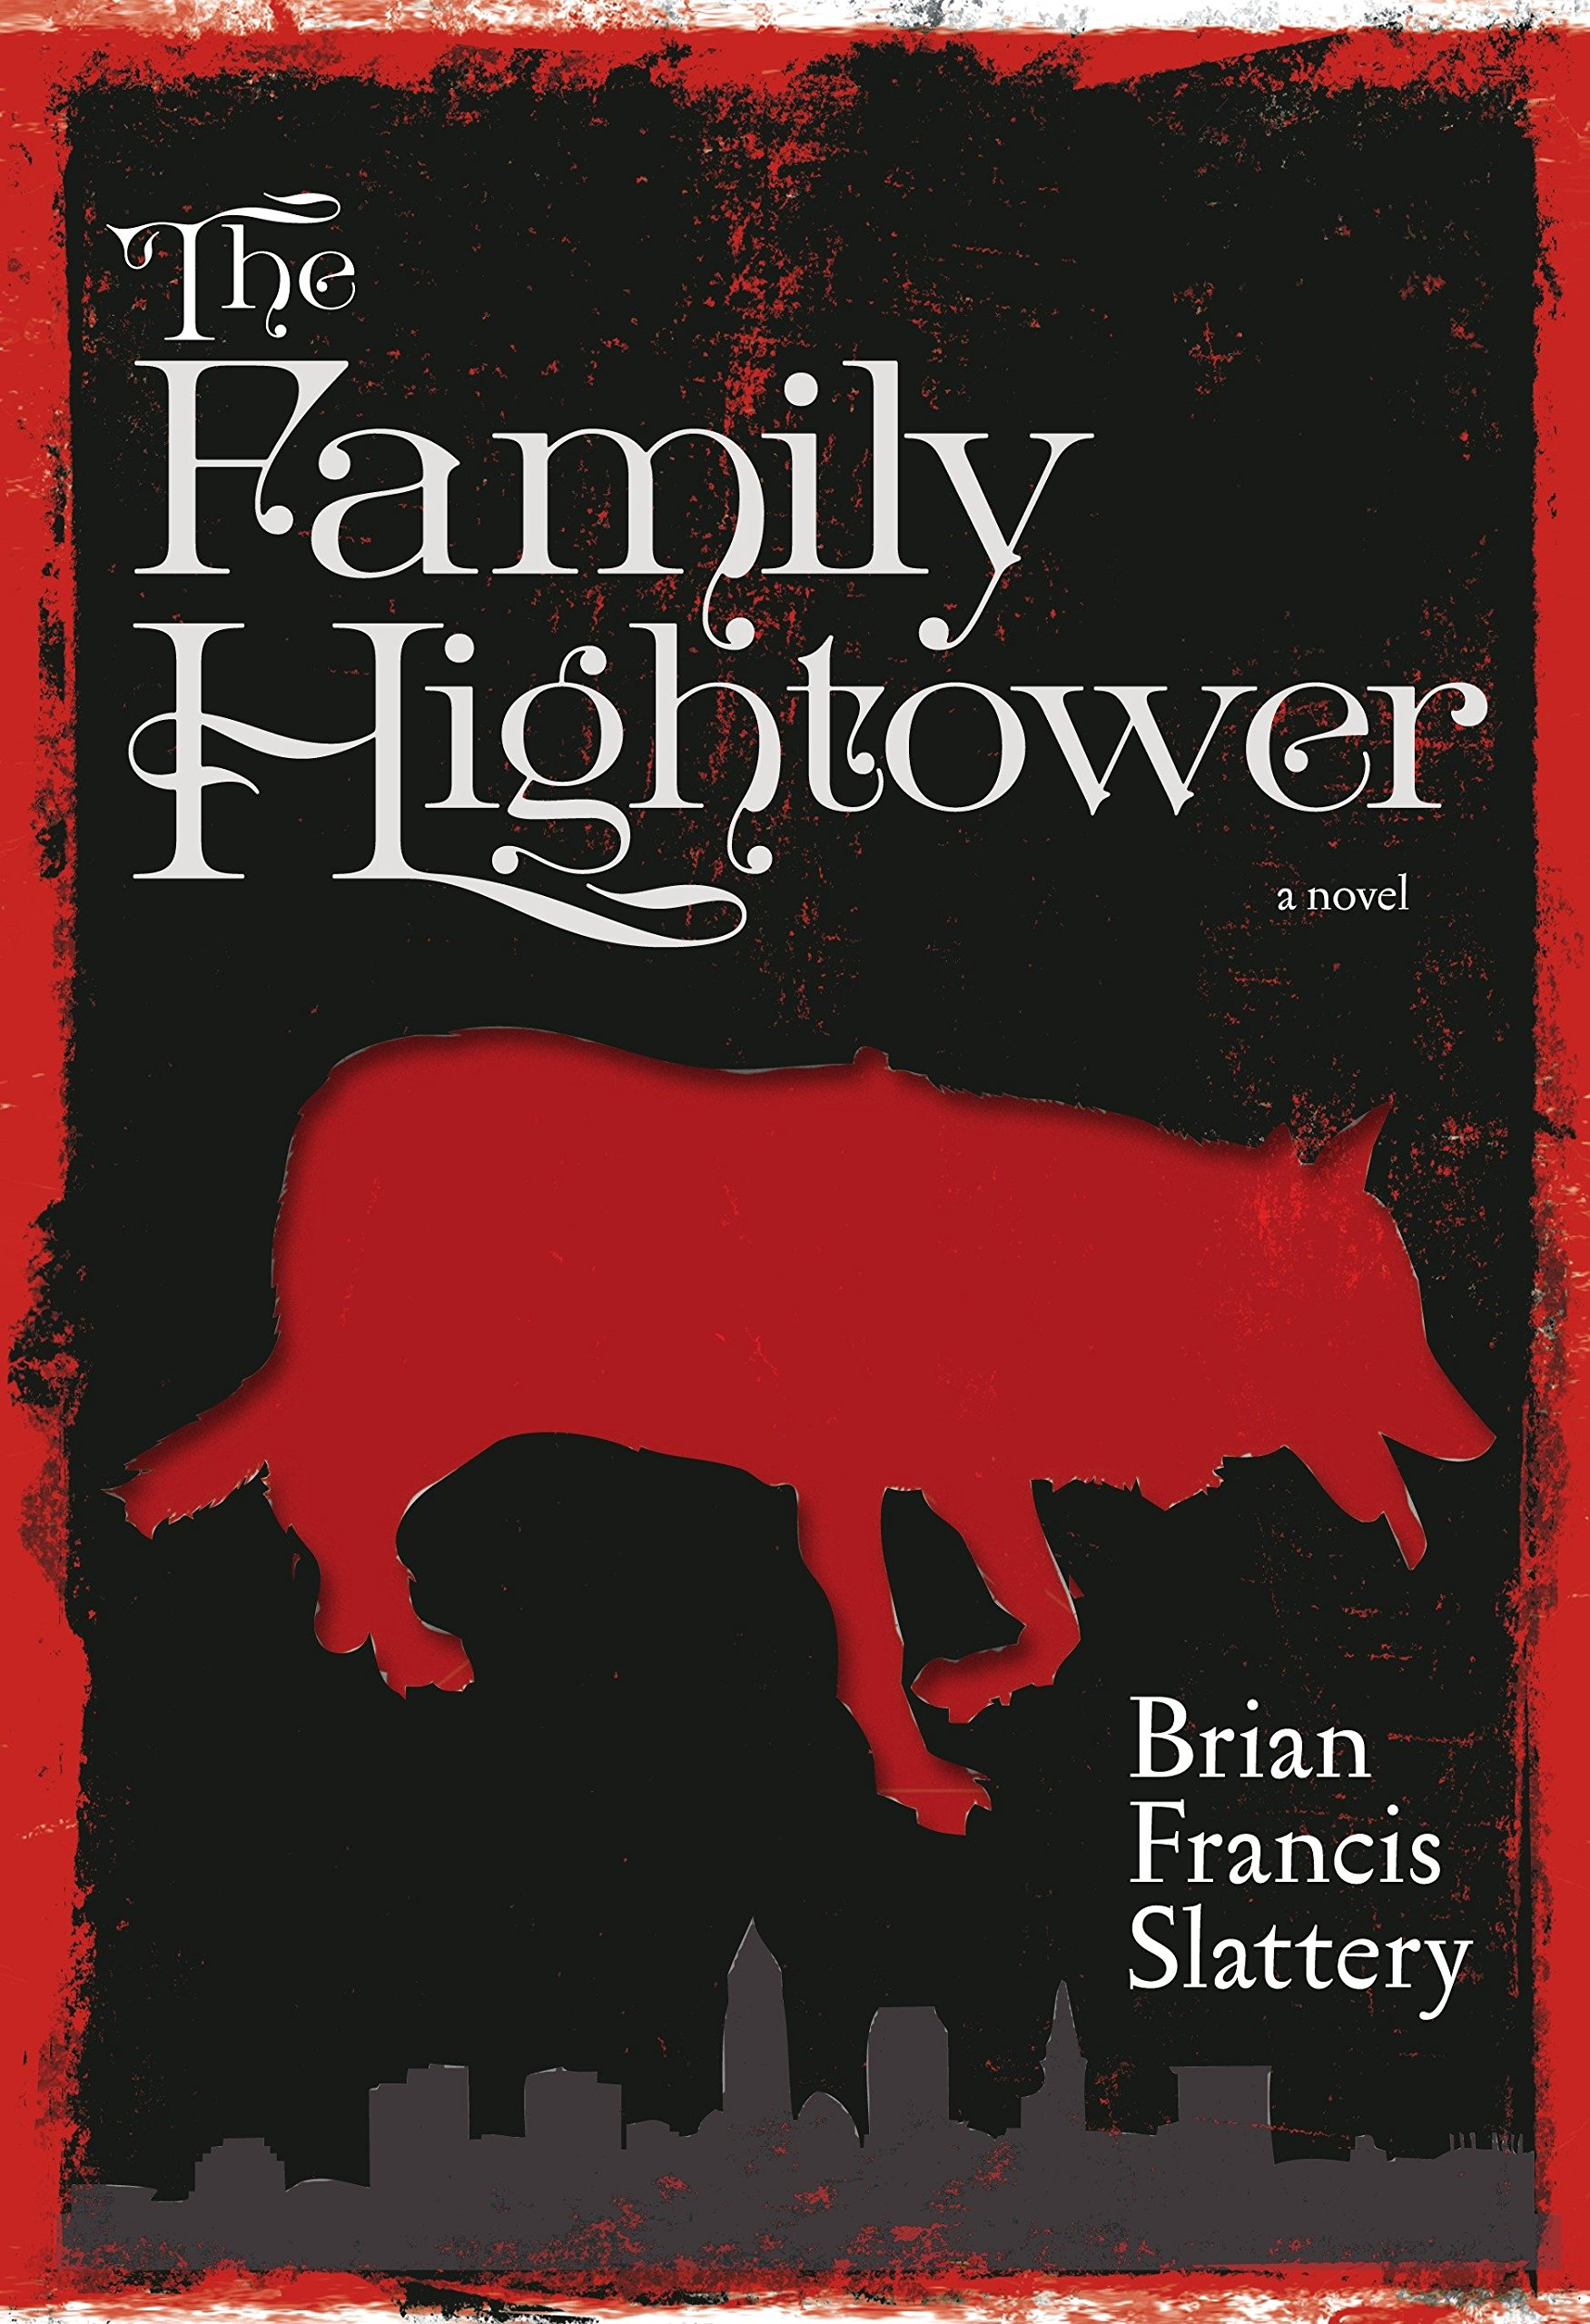 Download The Family Hightower: A Novel PDF